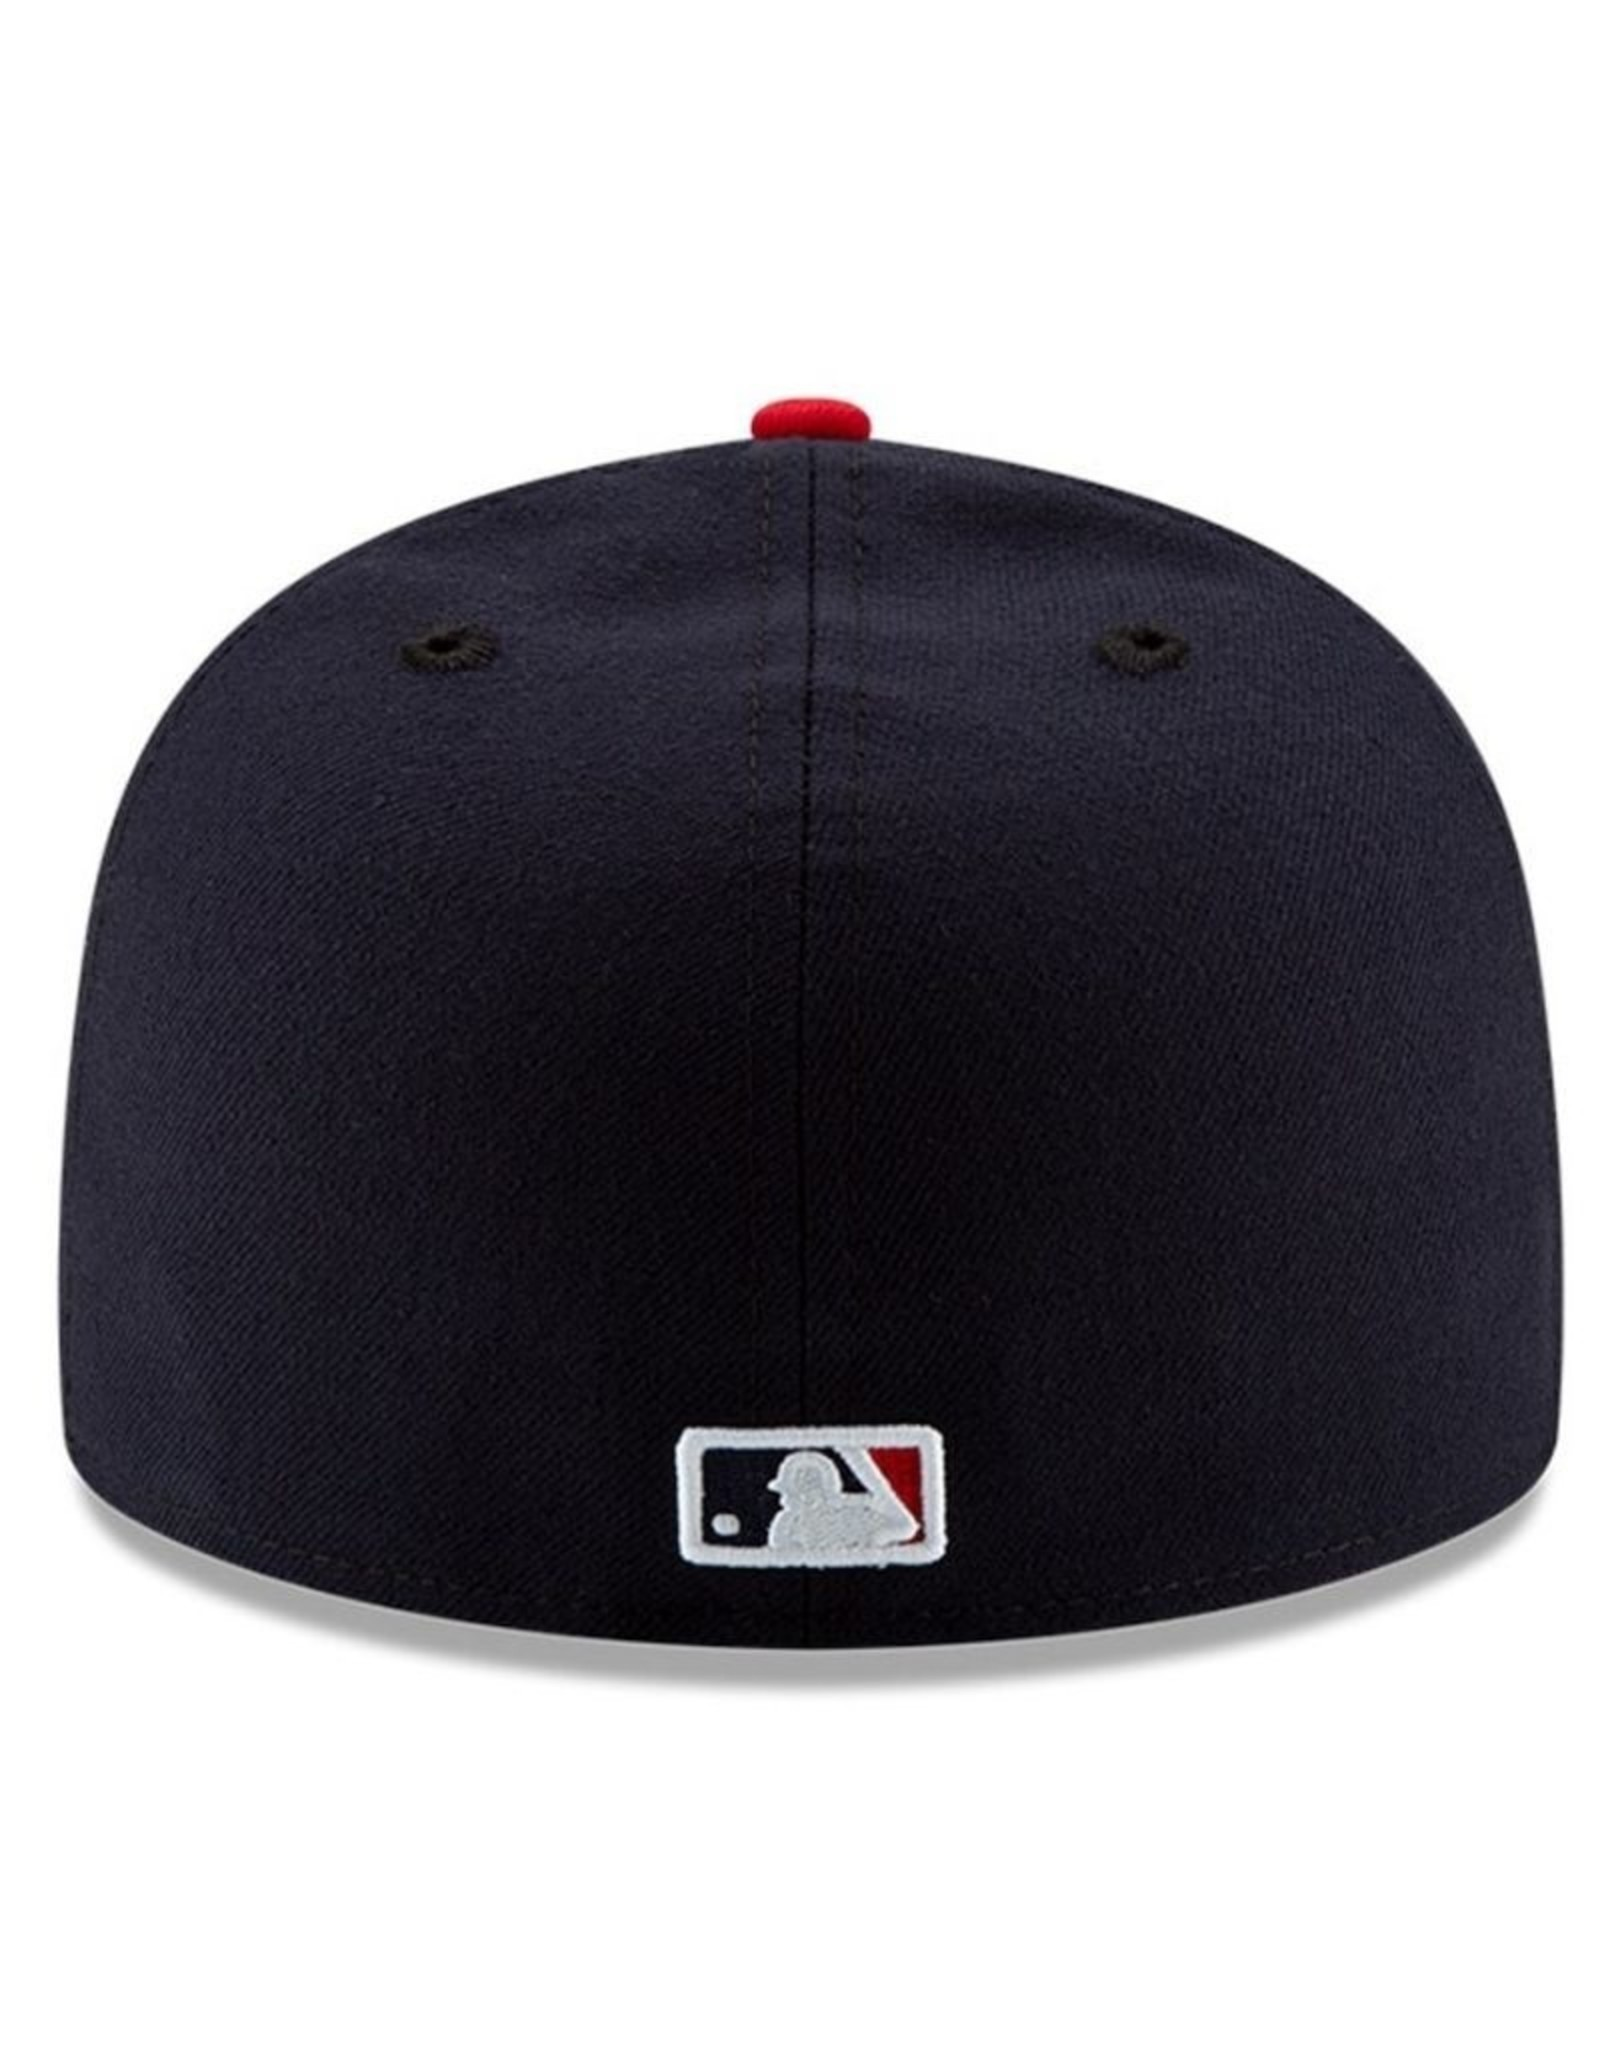 New Era On-Field Authentic 59FIFTY Home Hat Cleveland Indians Navy/Red